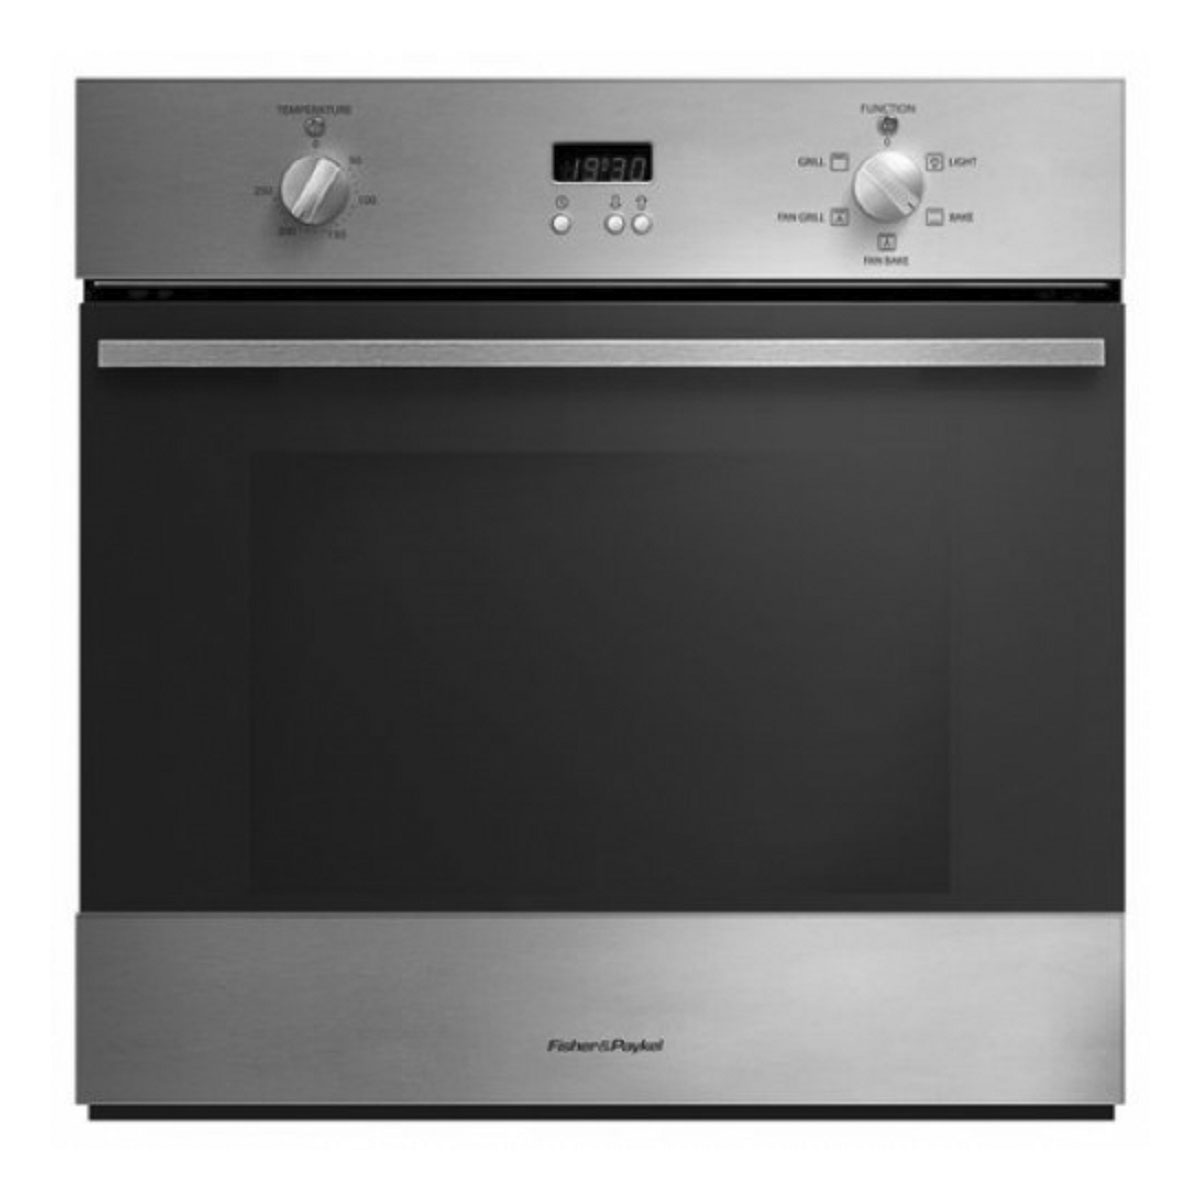 Fisher & Paykel OB60SLMFX4 60cm Single 4 Function Built-in Oven 26700